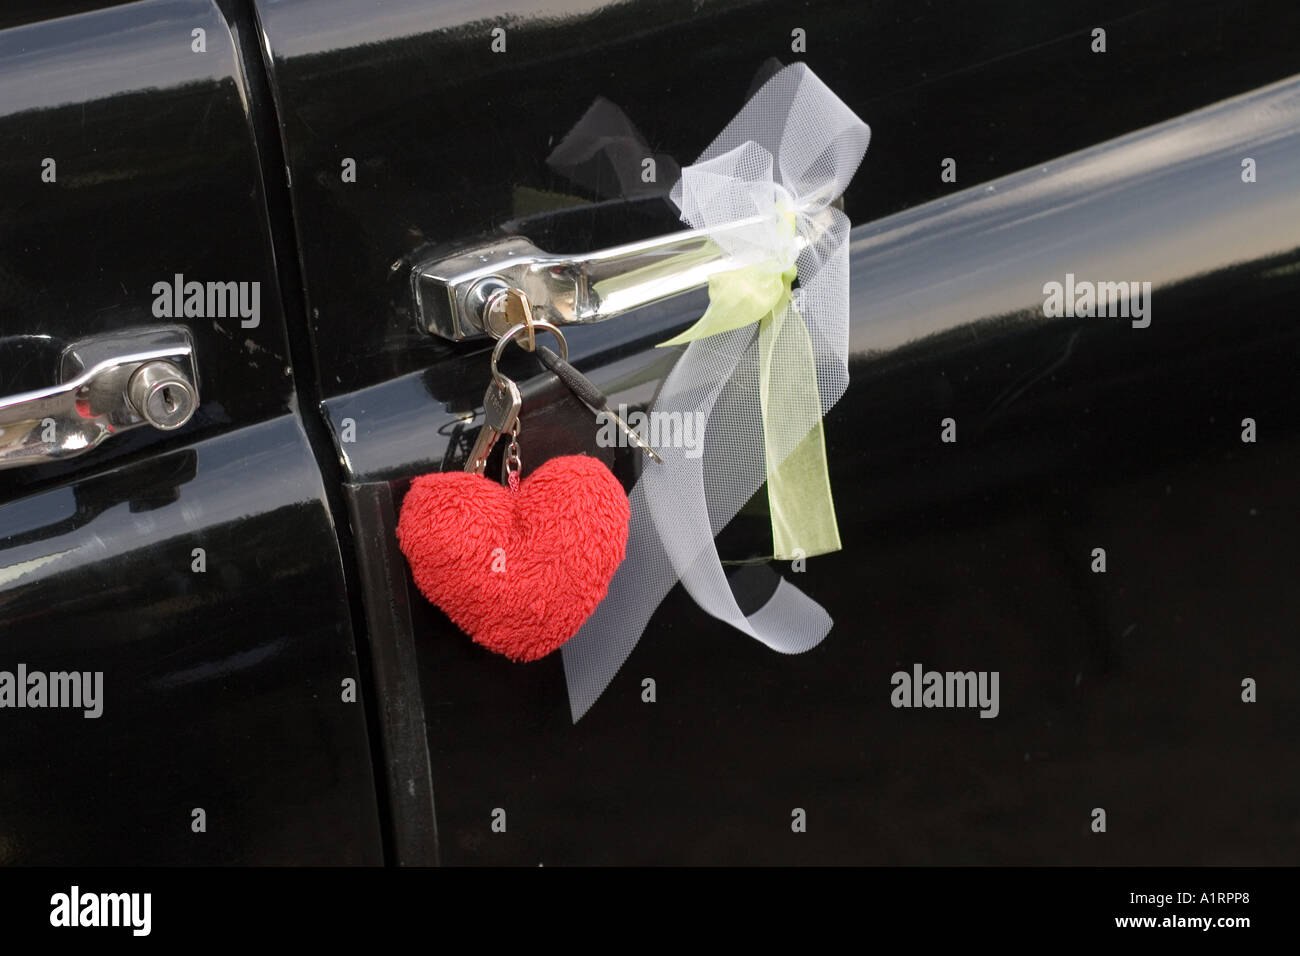 car key with wedding decoration and heart vintage car british taxi cab - Stock Image